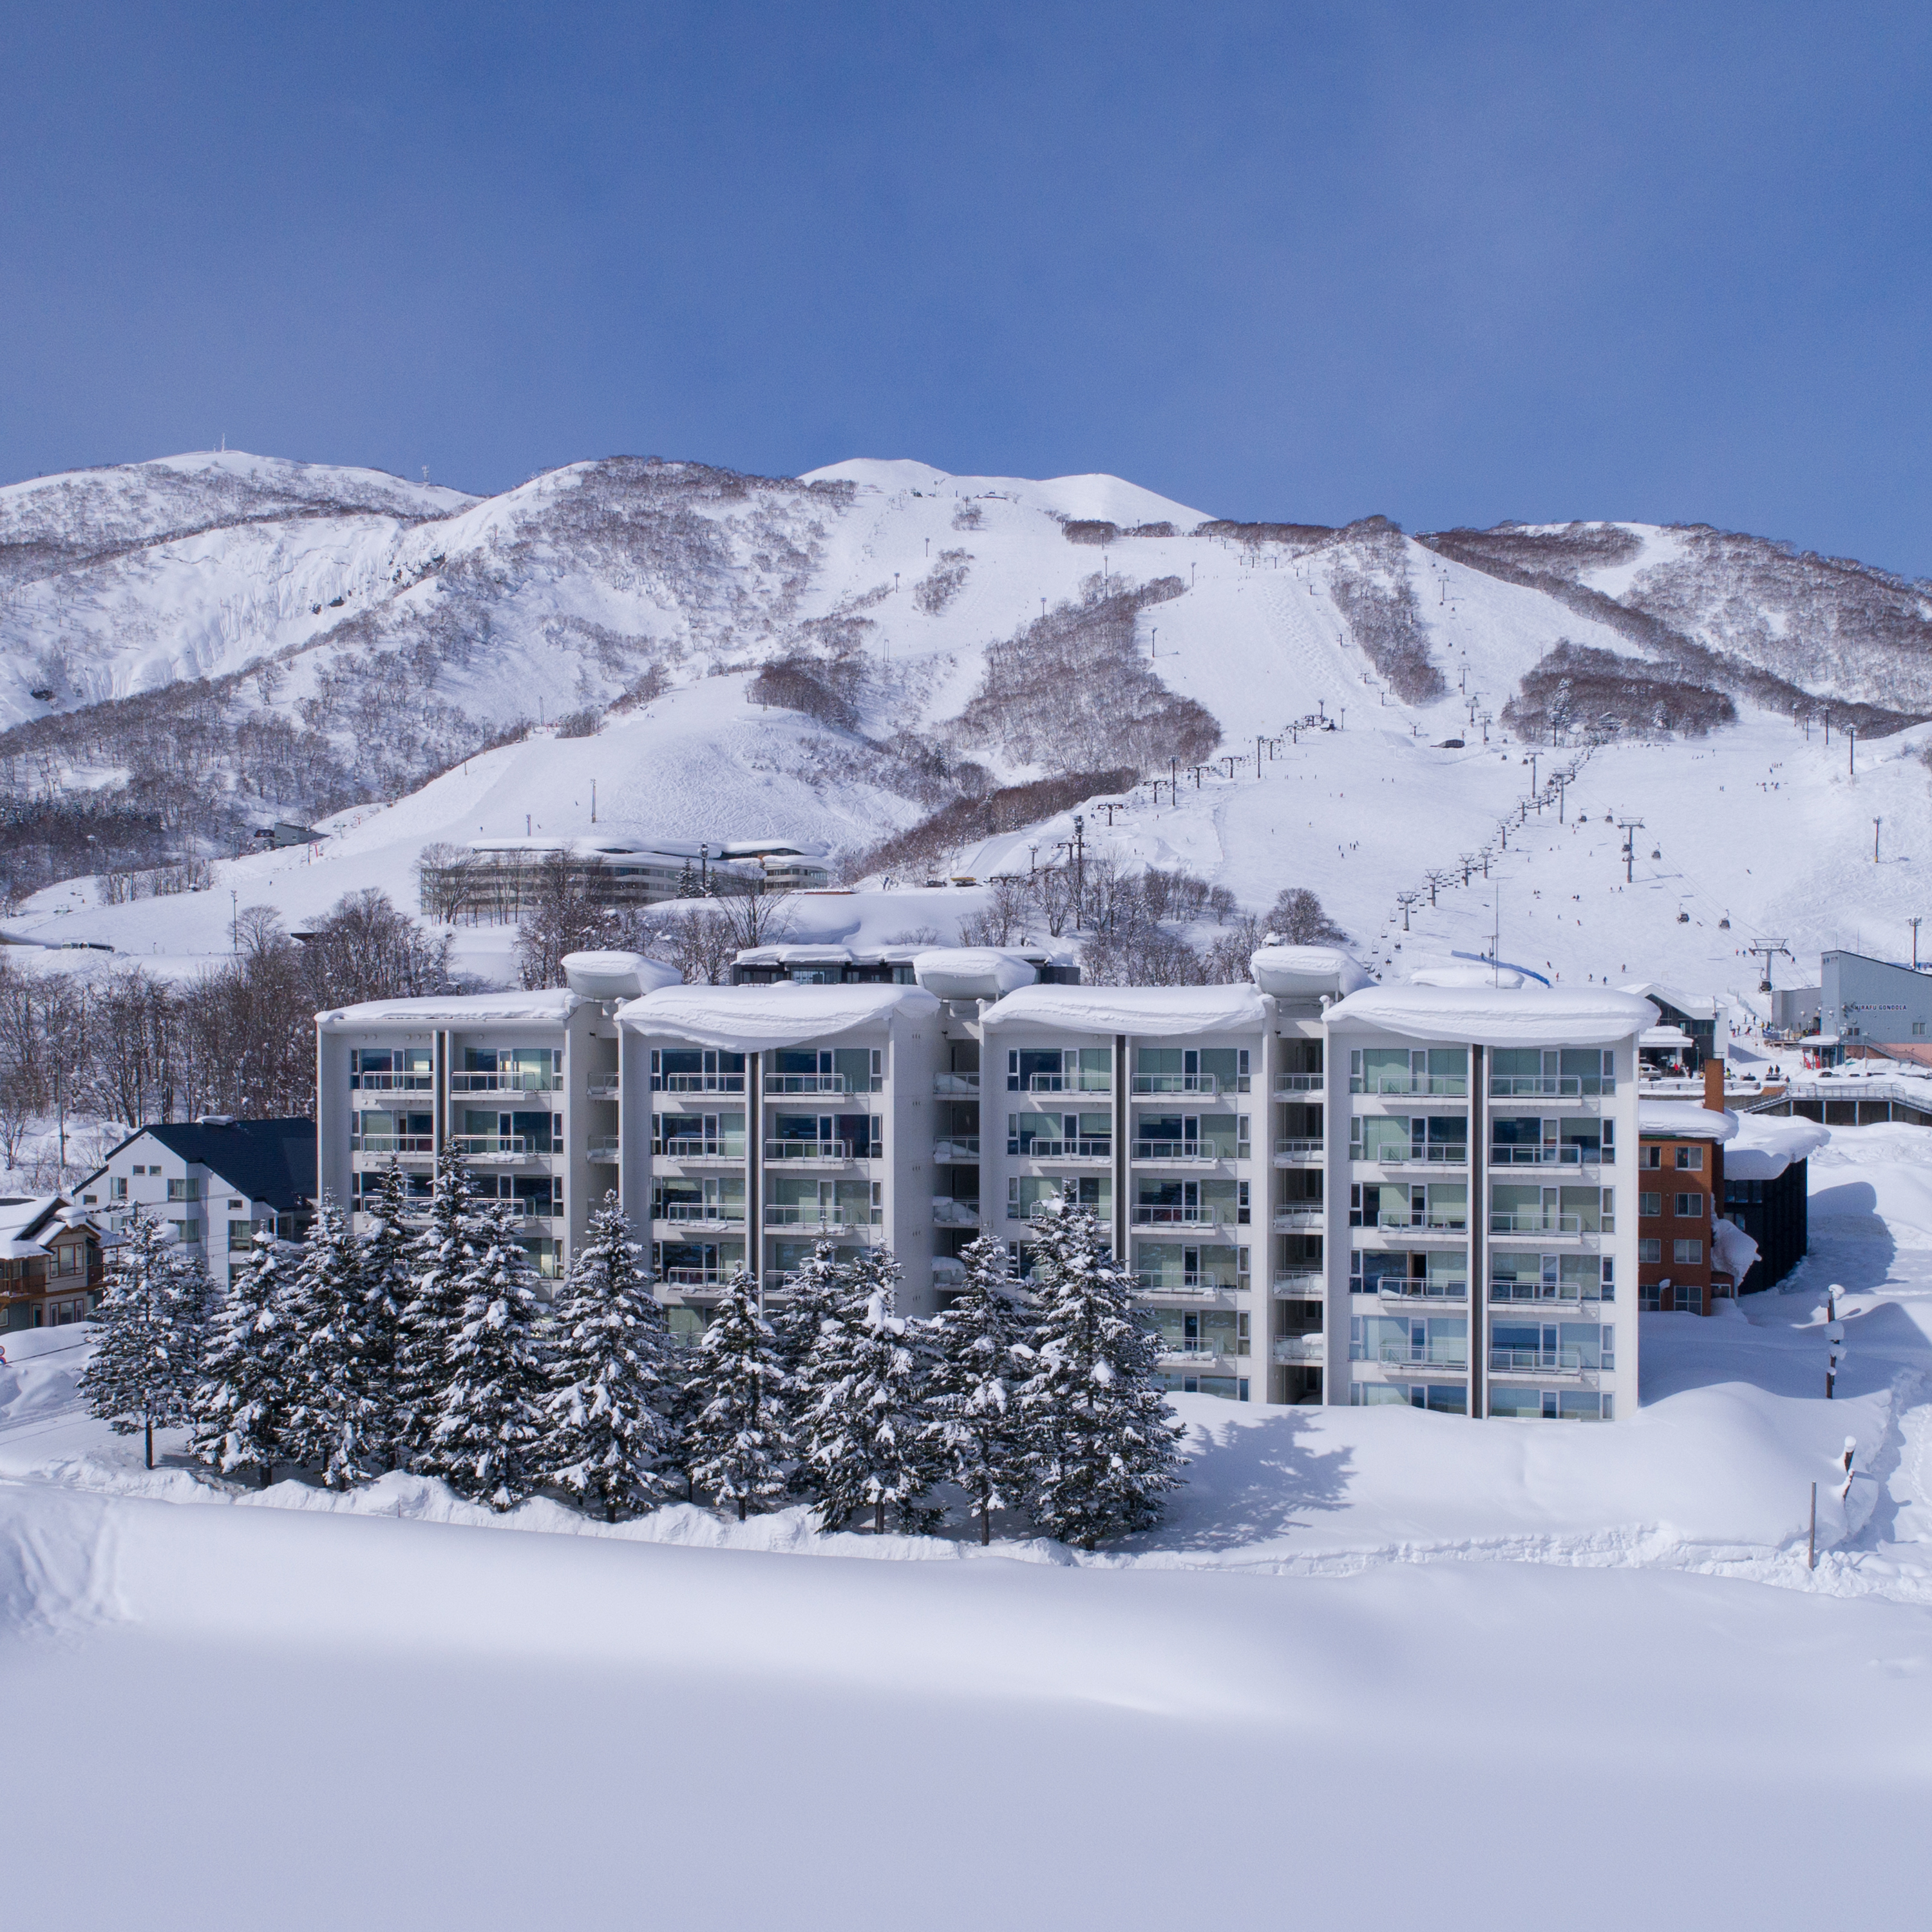 Snowy exterior of Niseko Landmark View apartments with Mt Niseko Annupuri Ski Hill in the background.